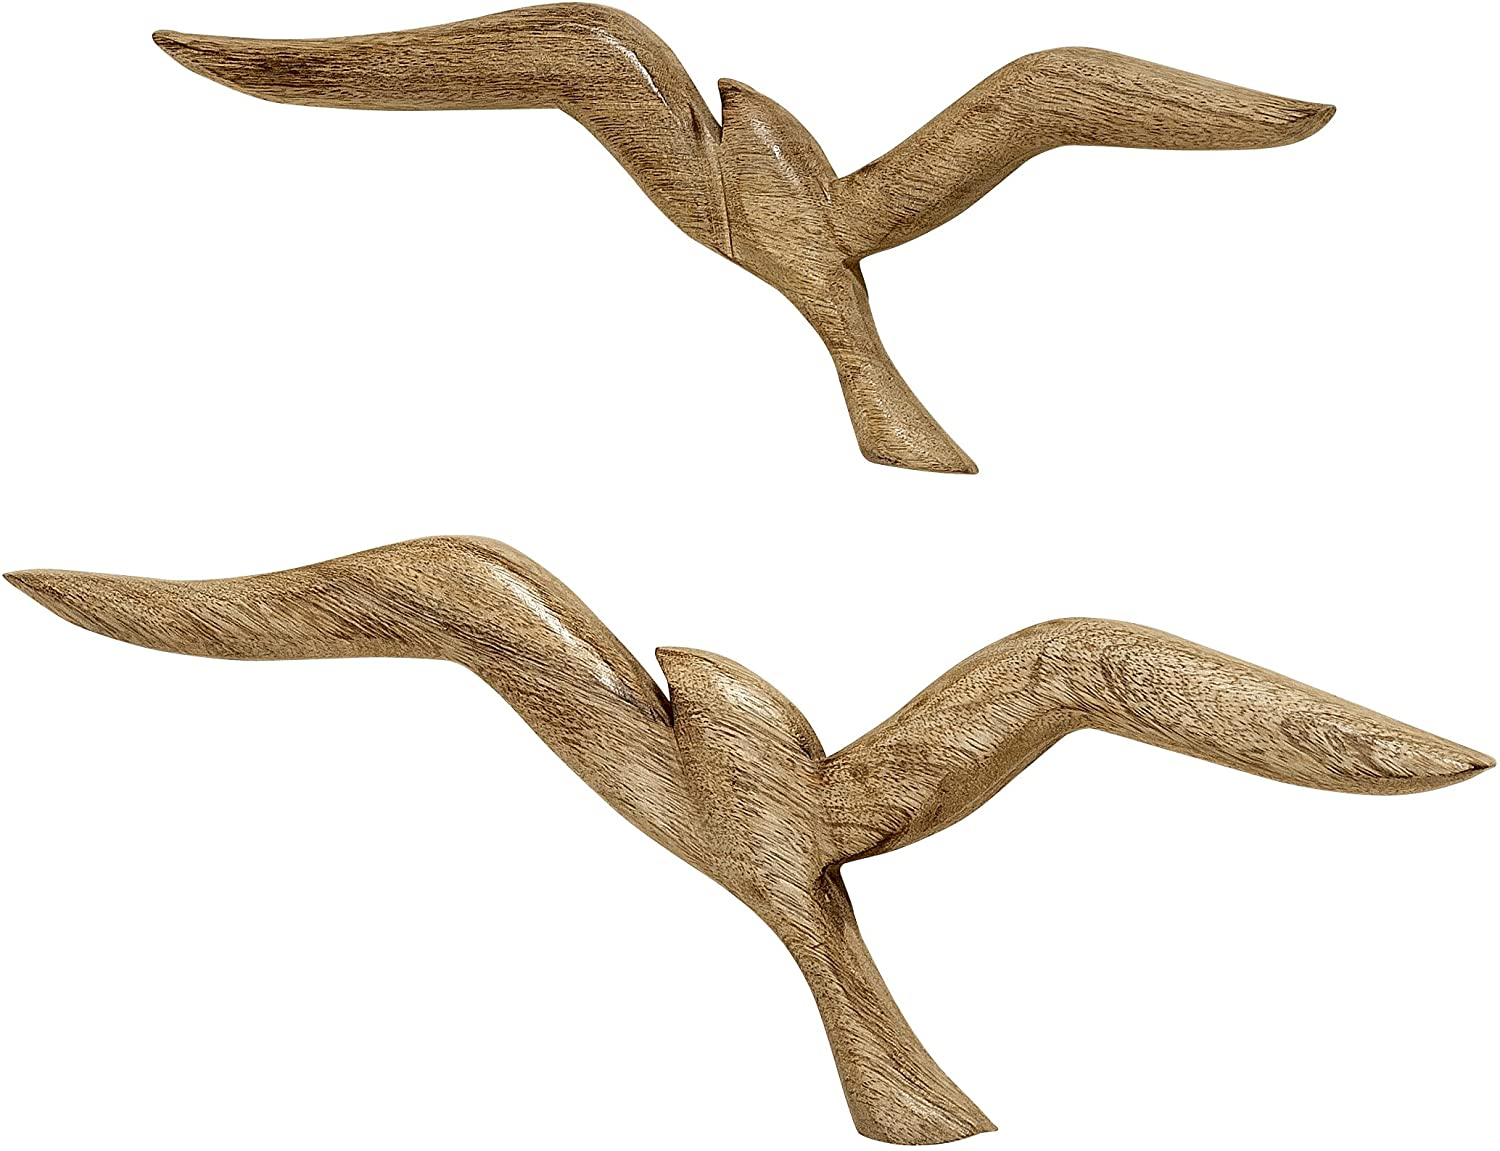 WHW Whole House Worlds Americana Flying Sea Gulls Wall Sculptures, Curated Set of 2, Handcrafted, Carved of Solid Mango Wood, Each Bird Over 1 Foot Long (18 x 6 1/4 and 14 1/4 x 5 Inches)